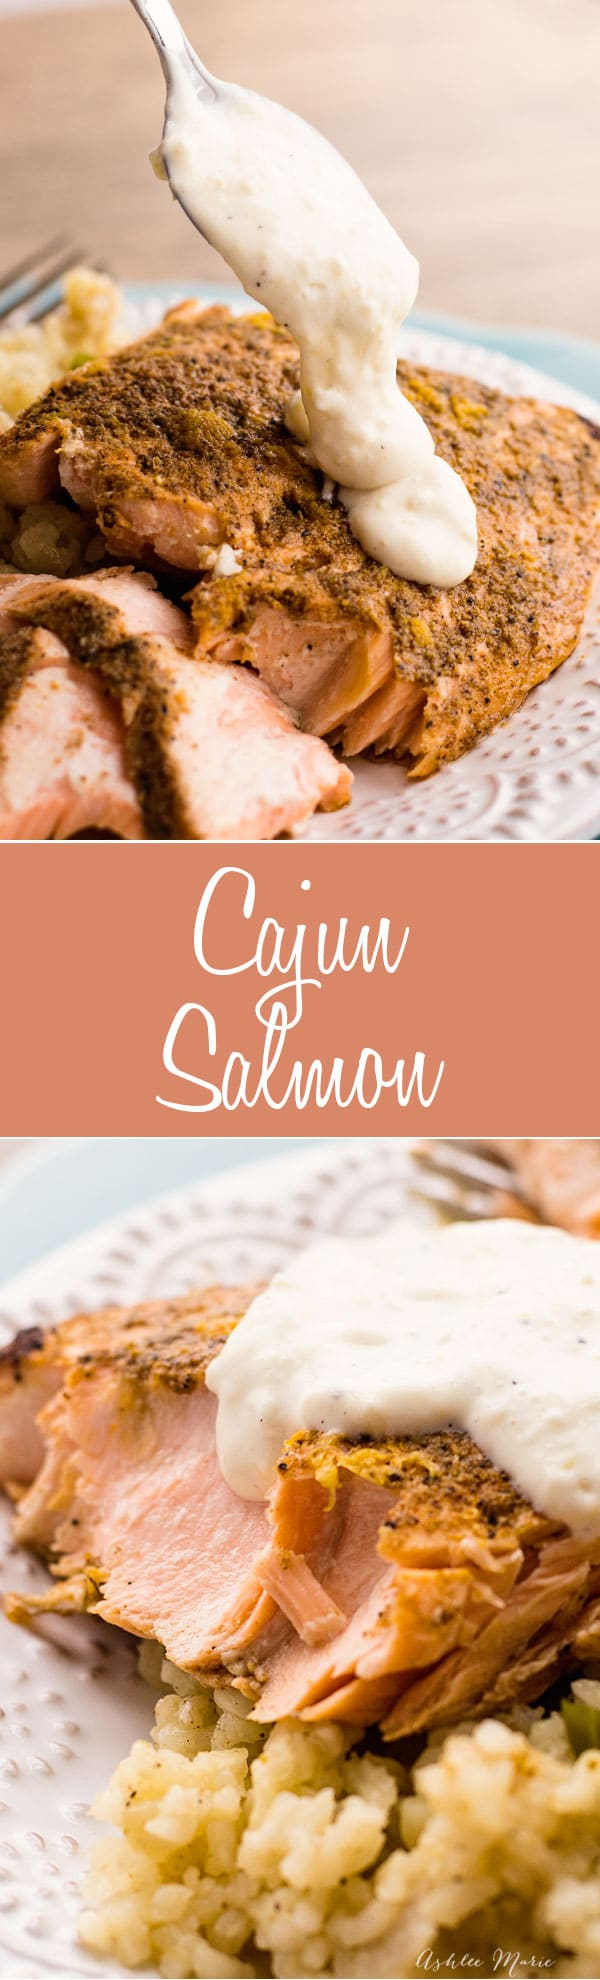 This Cajun Salmon is super spicy and full of flavor, served with a lemon aoili its the perfect balance for this delicious meal